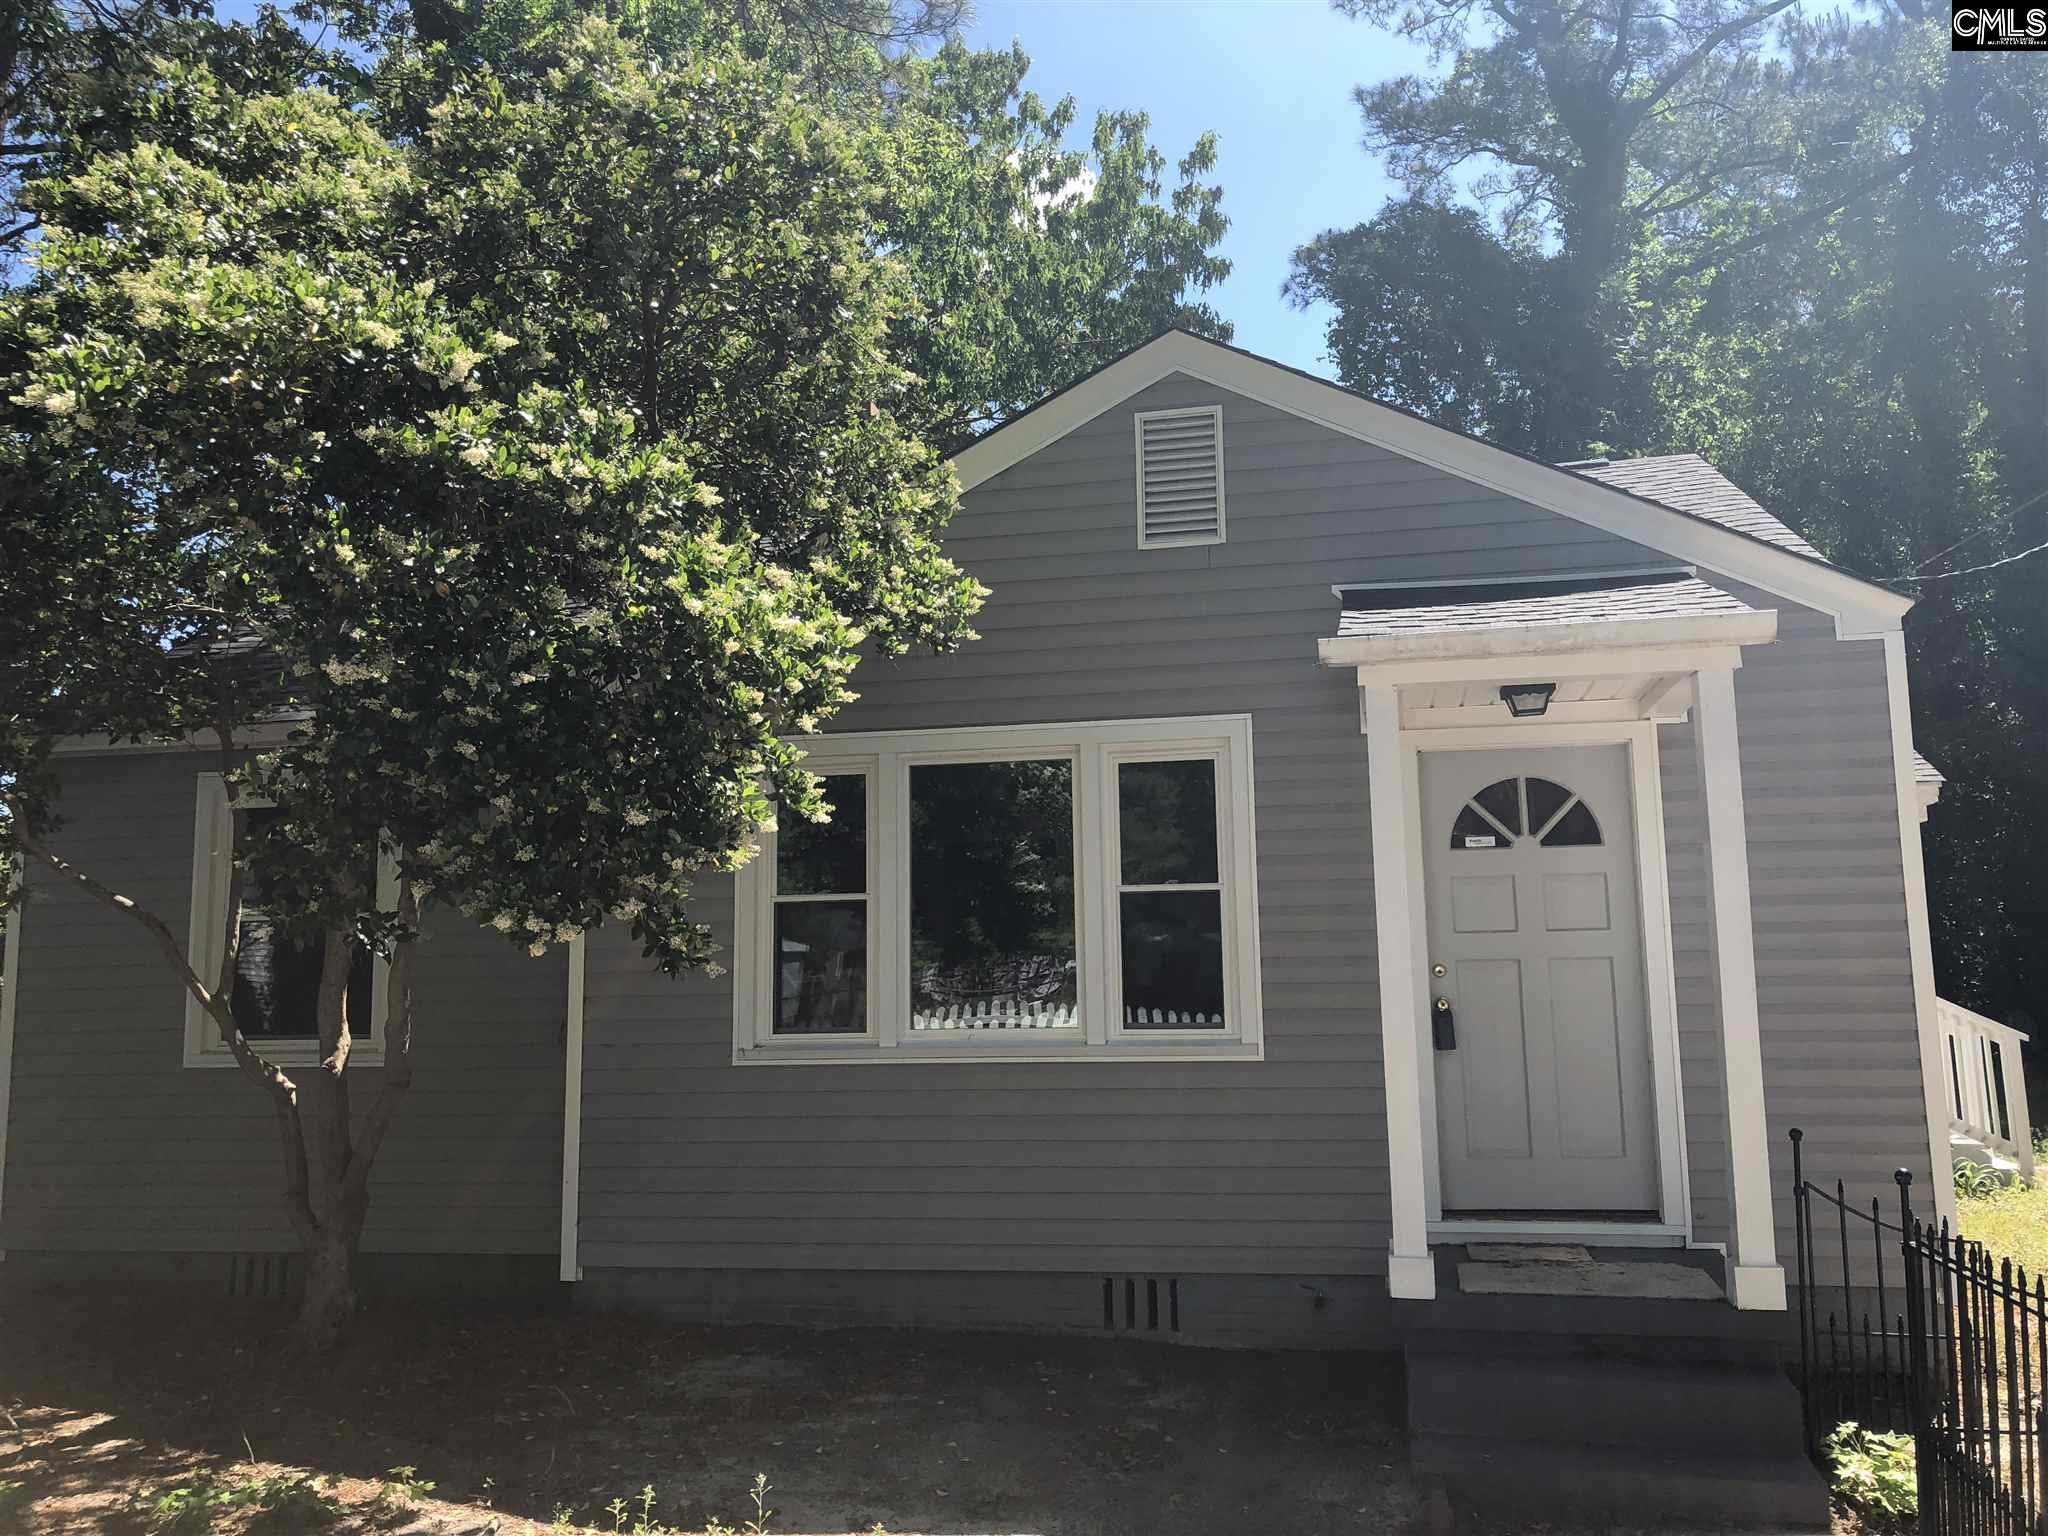 Charming cottage located on a great street.    Gleaming hardwood floors. Renovated. Convenient to everything.  Brennen, Crayton, AC Flora schools.